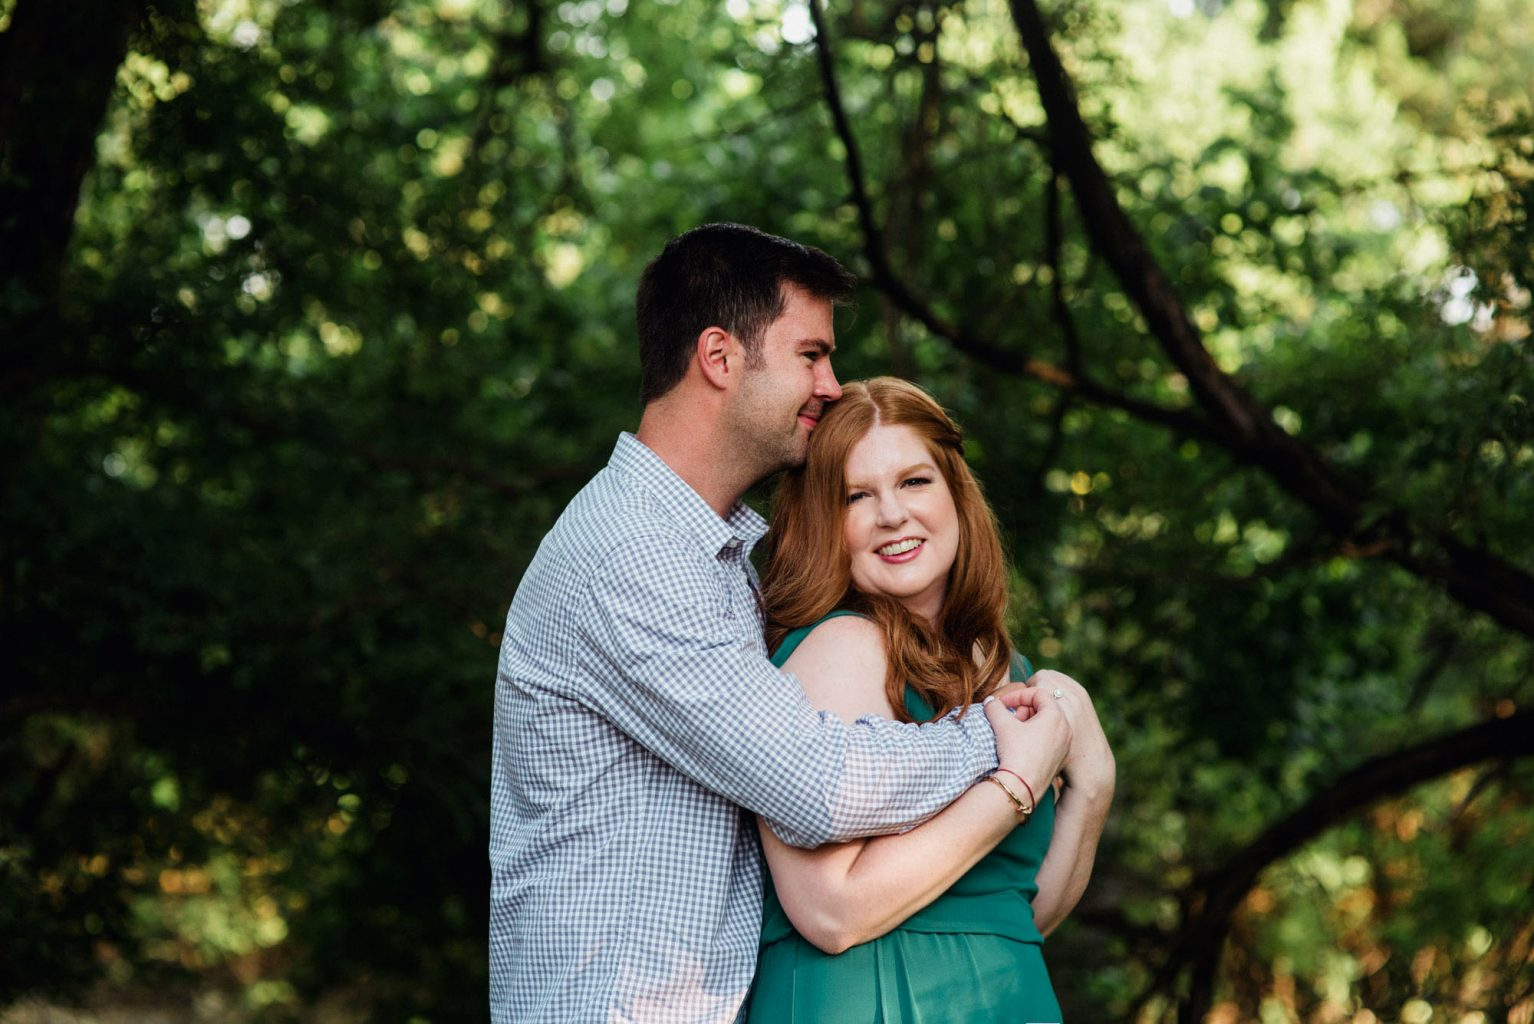 a man and woman in a green dress pose for engagement photos in greenery